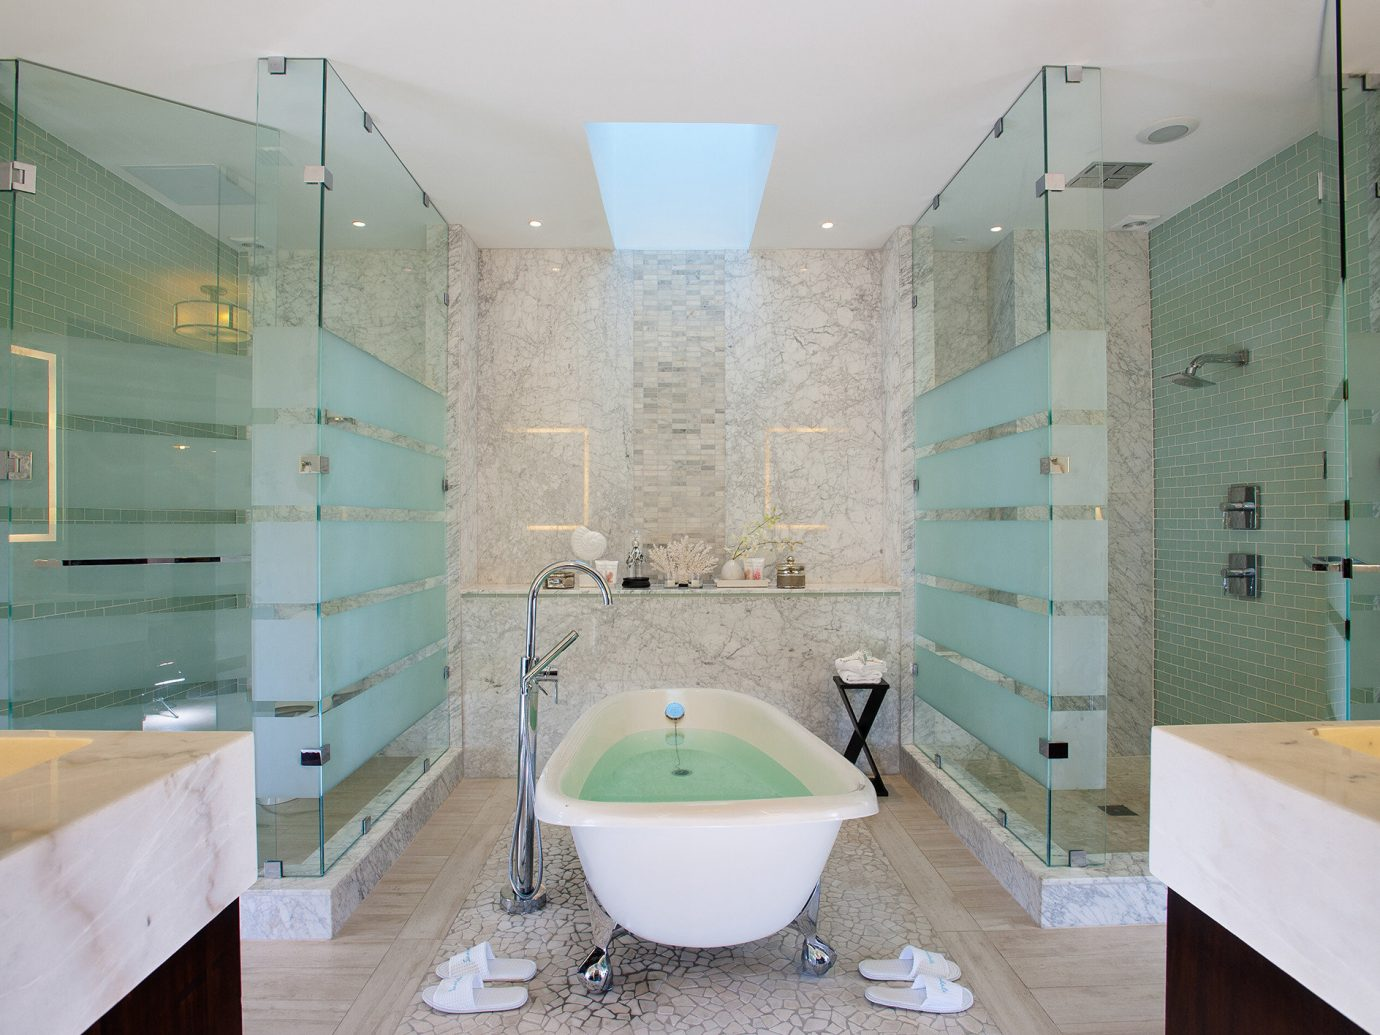 All-Inclusive Resorts caribbean indoor bathroom wall sink room interior design Architecture glass home tile floor plumbing fixture estate daylighting ceiling angle interior designer window Bath